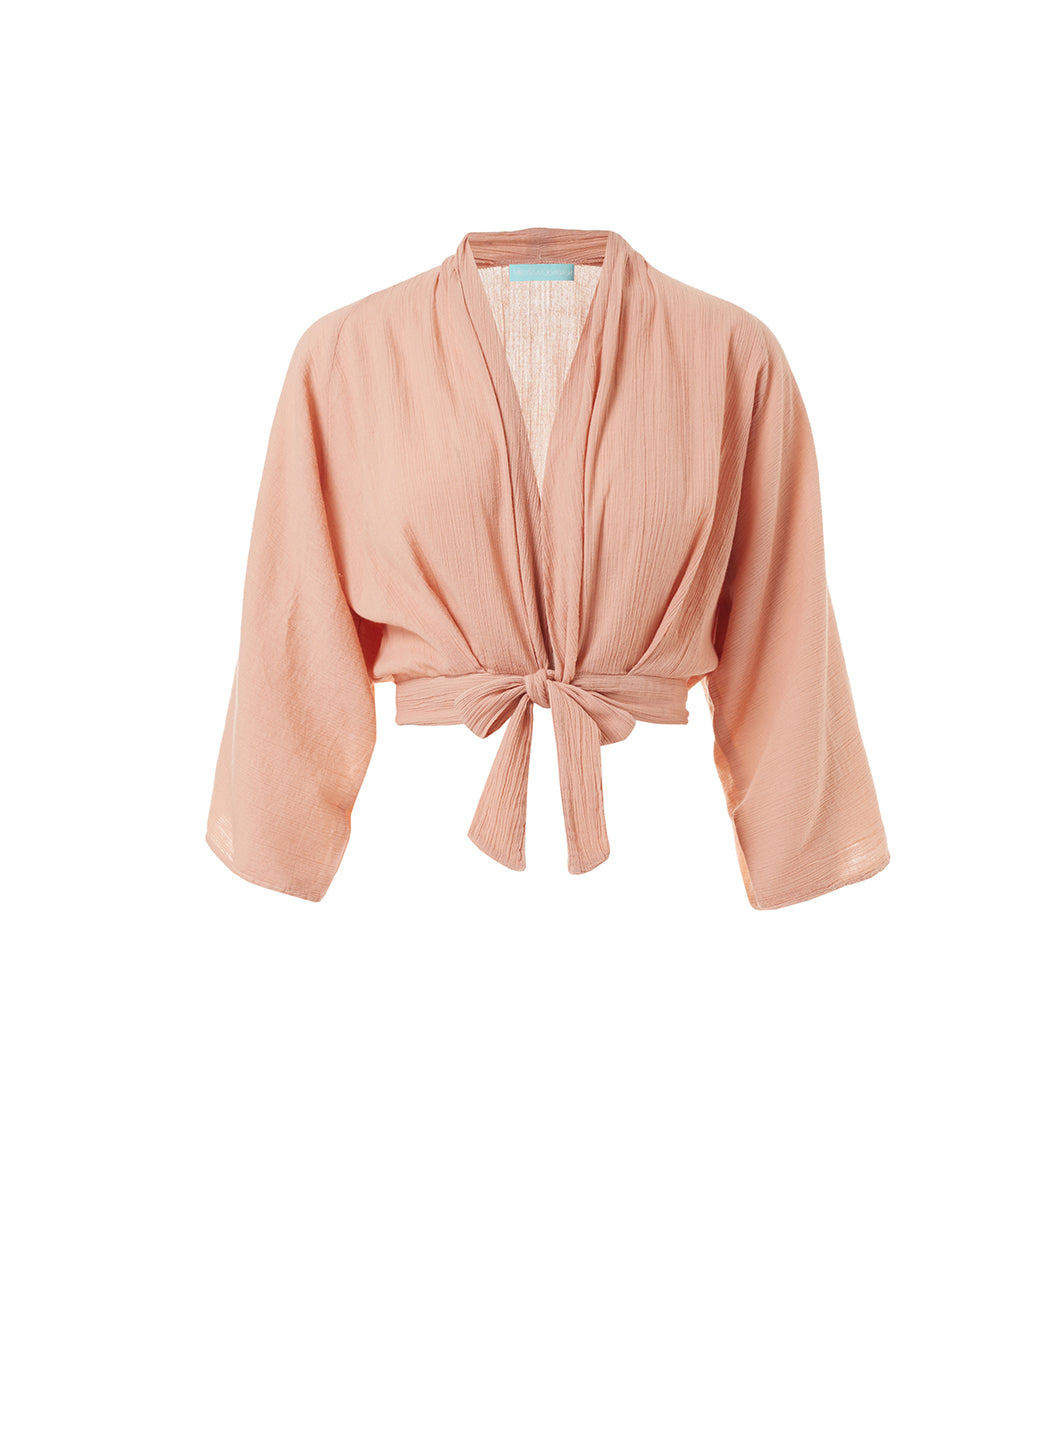 Mila Tan Tie-Front Cropped Blouse - Melissa Odabash Tops & Bottoms